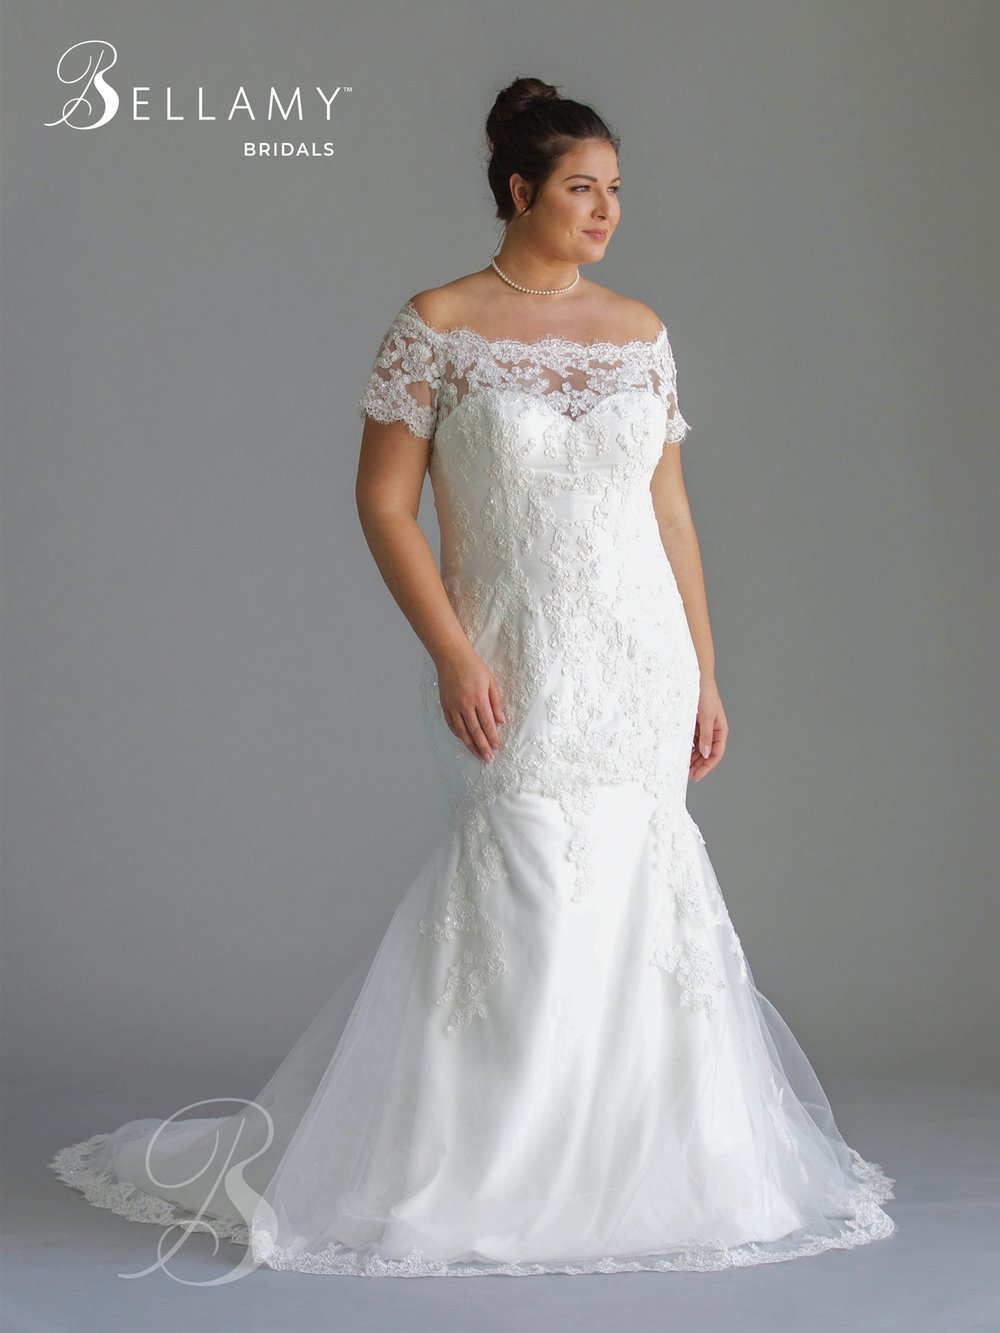 Plus Size Bridal Dress at Brilliant Bridal